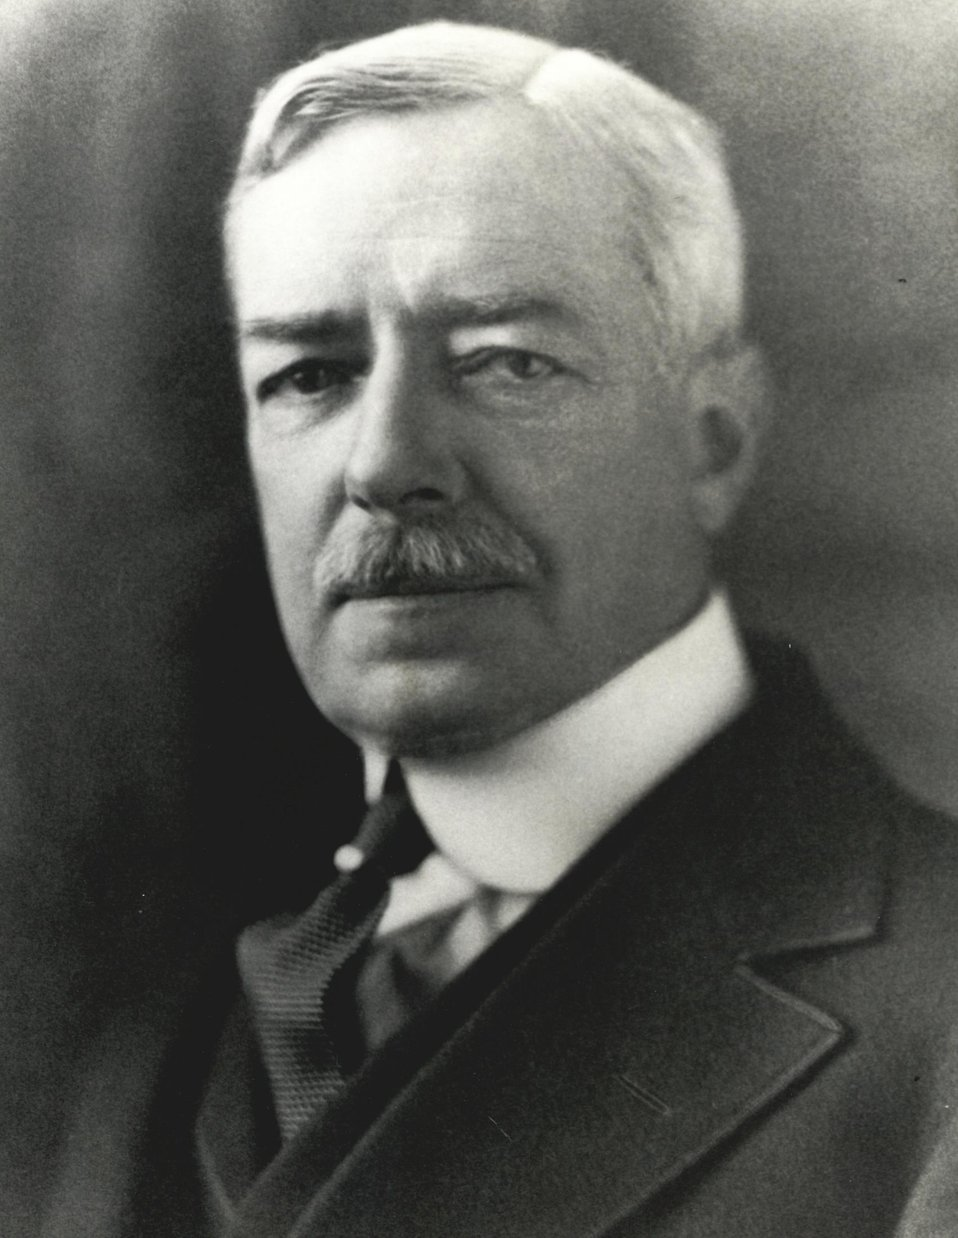 Robert Lansing, U.S. Secretary of State